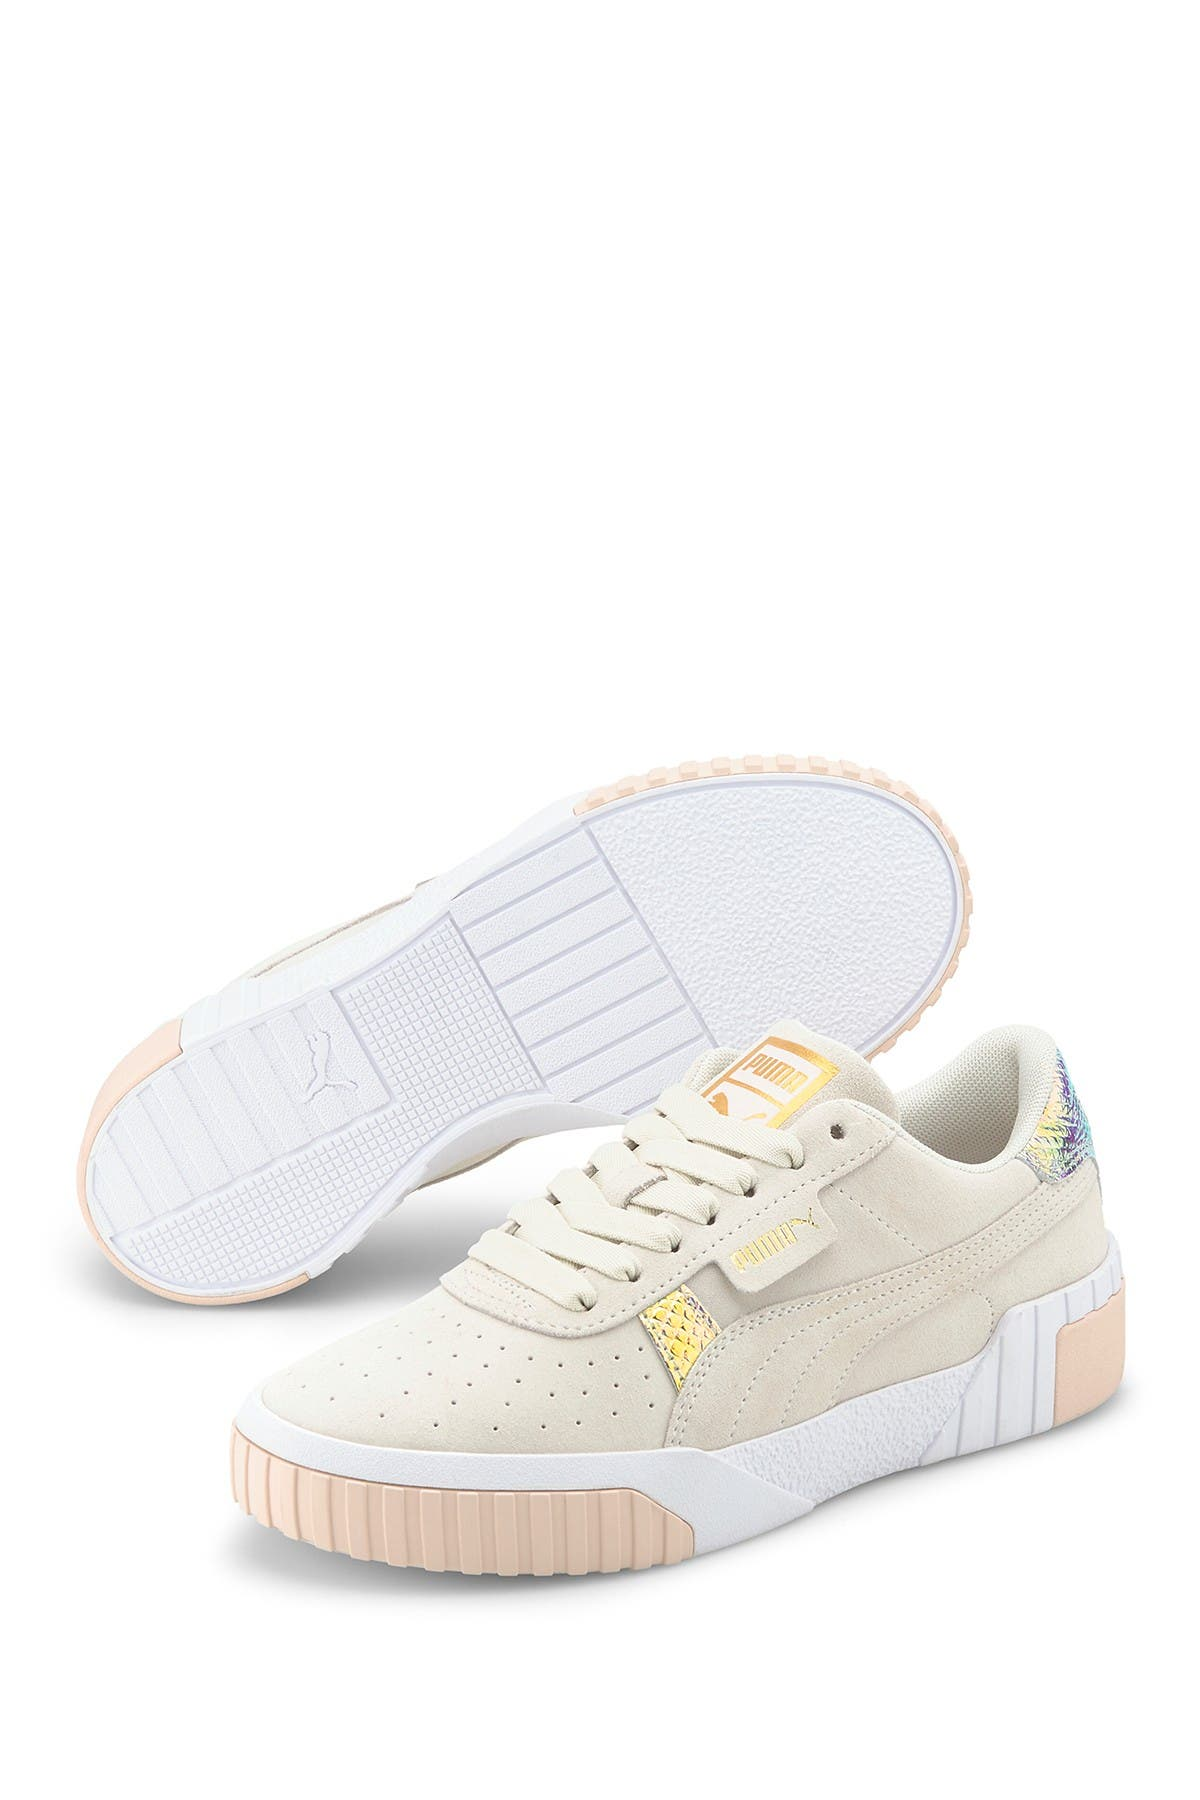 PUMA | Cali Suede Shimmer Low Top